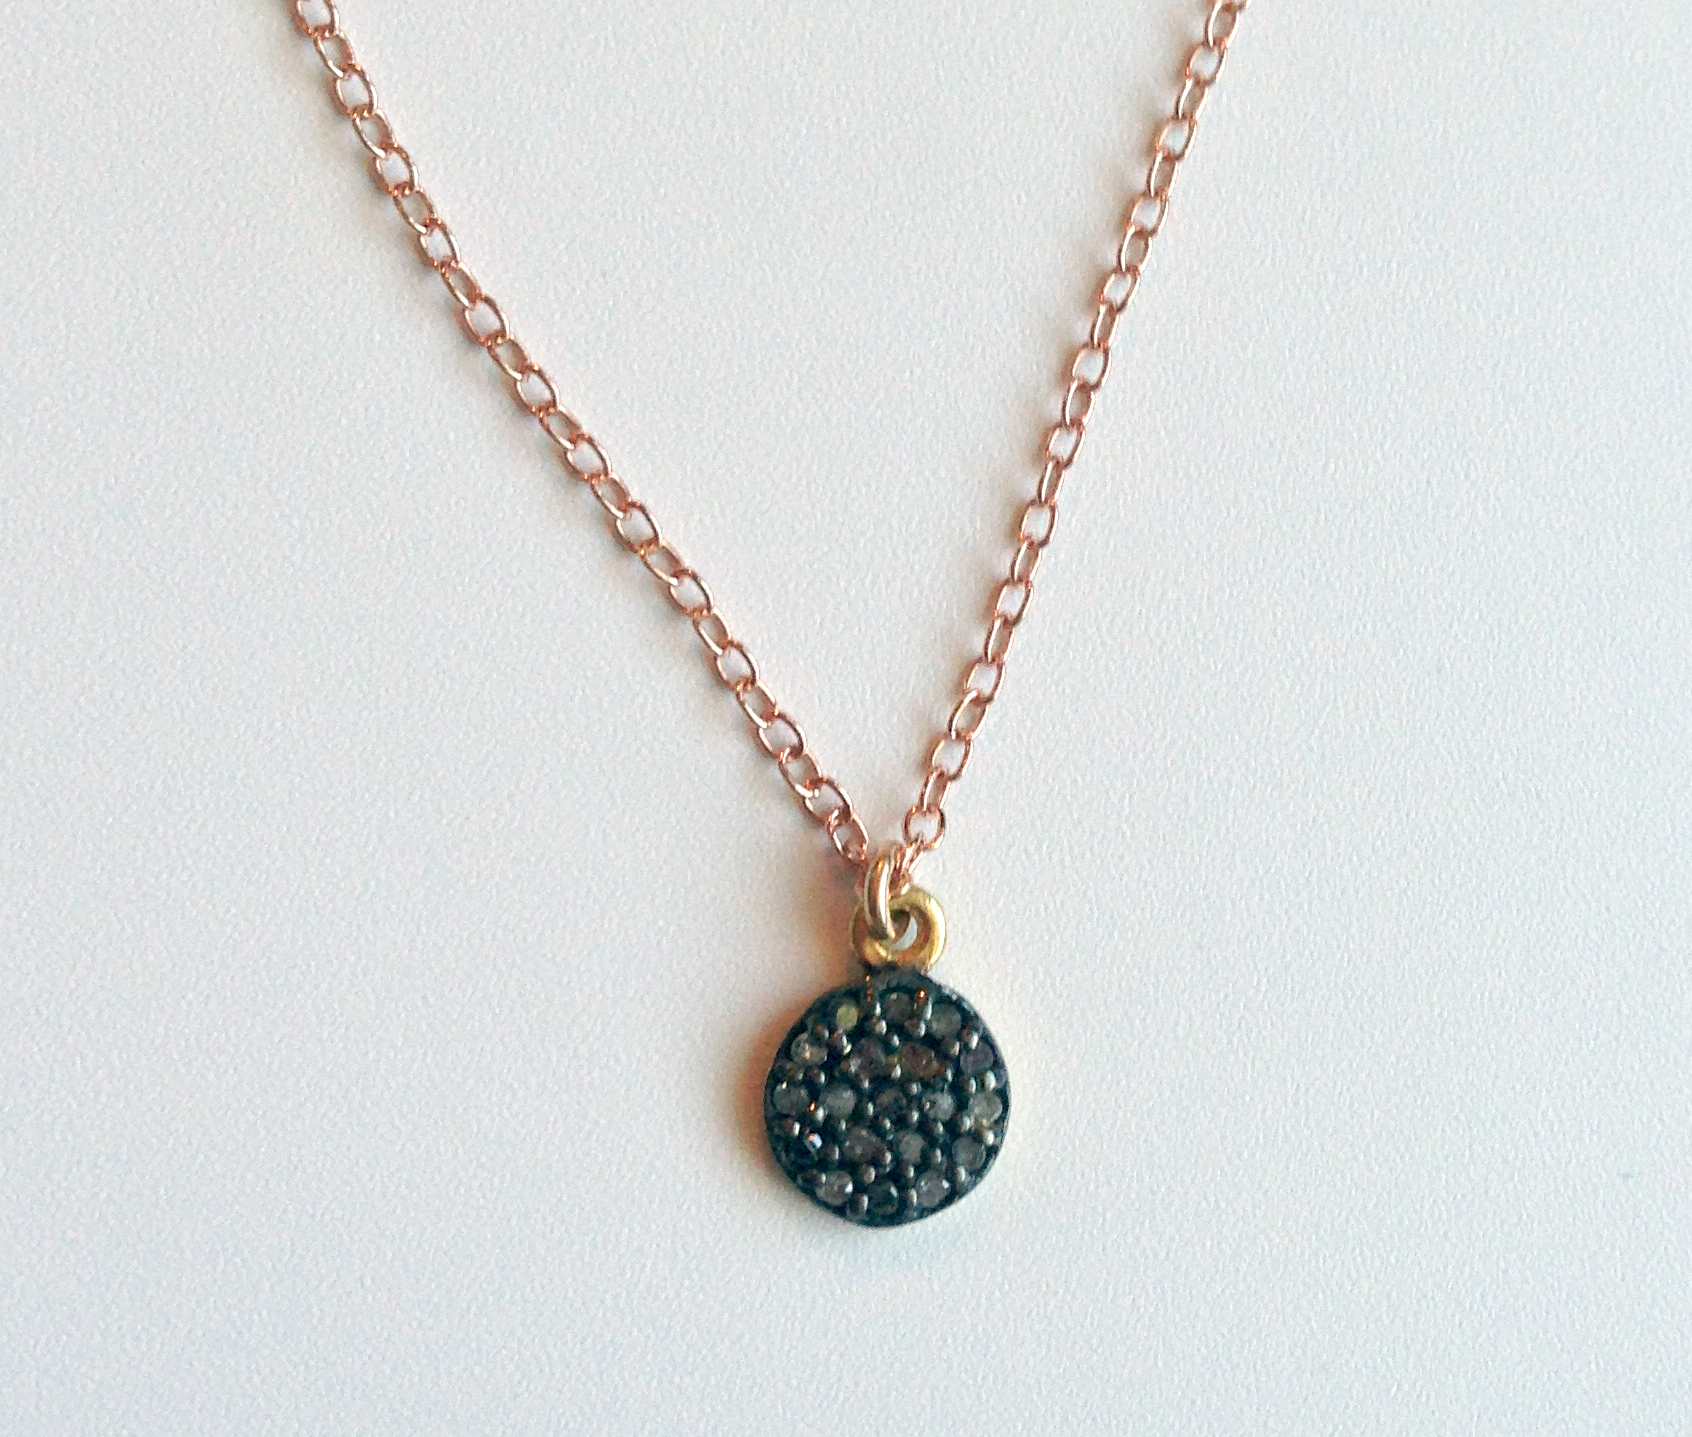 Necklace 07